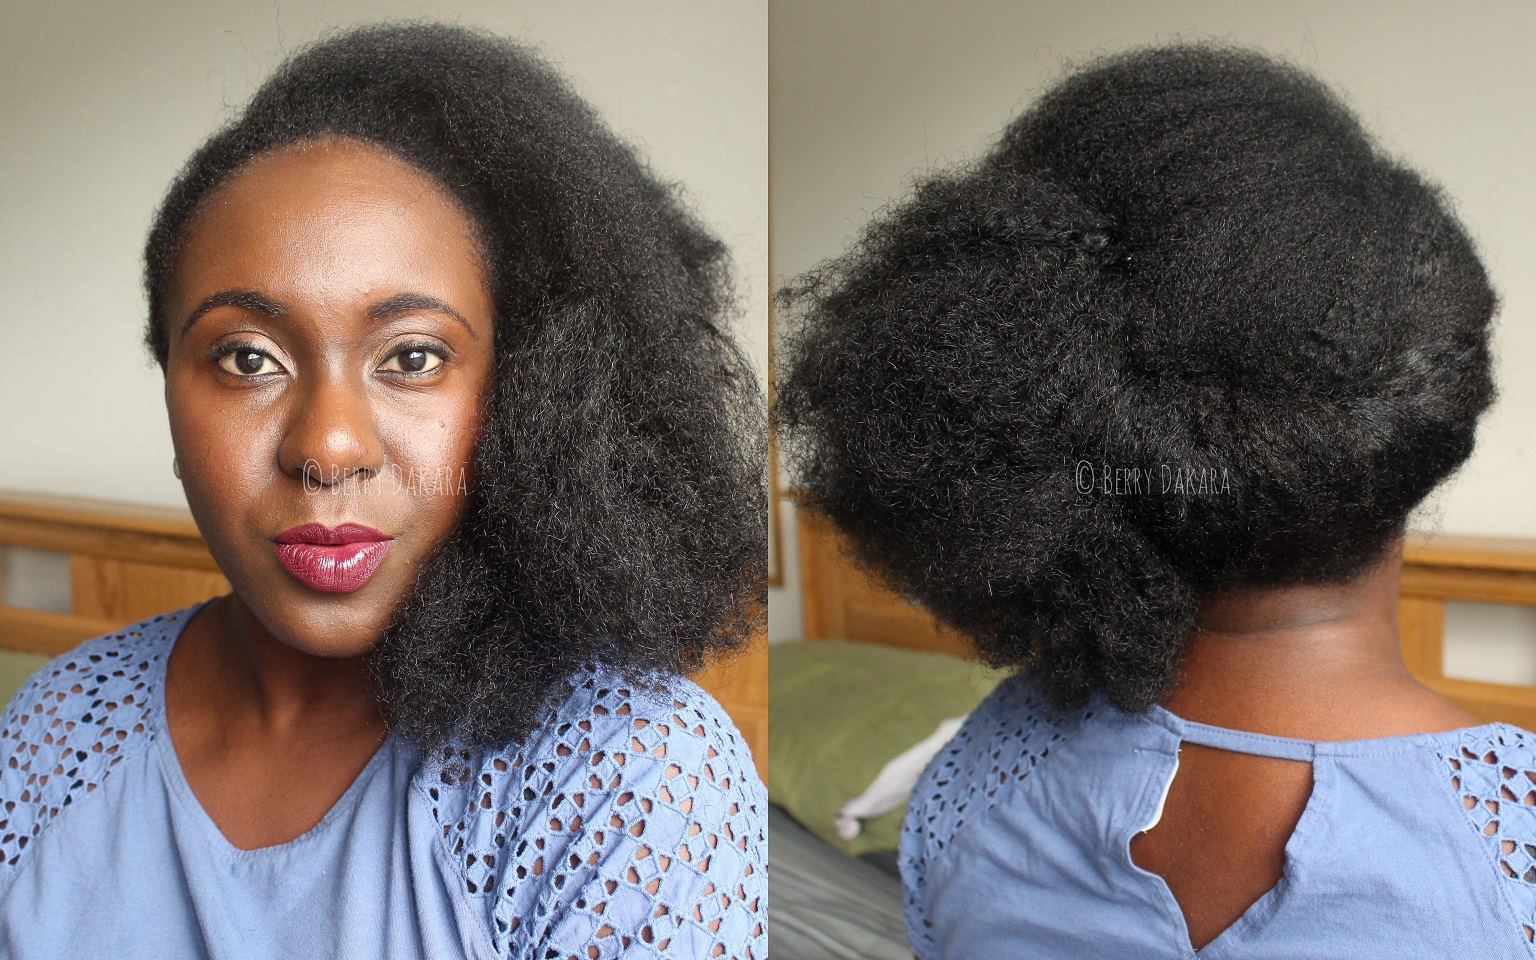 Crochet Braids En Vixen : ... team natural, crochet braids, protective styles, vixen crochet braids